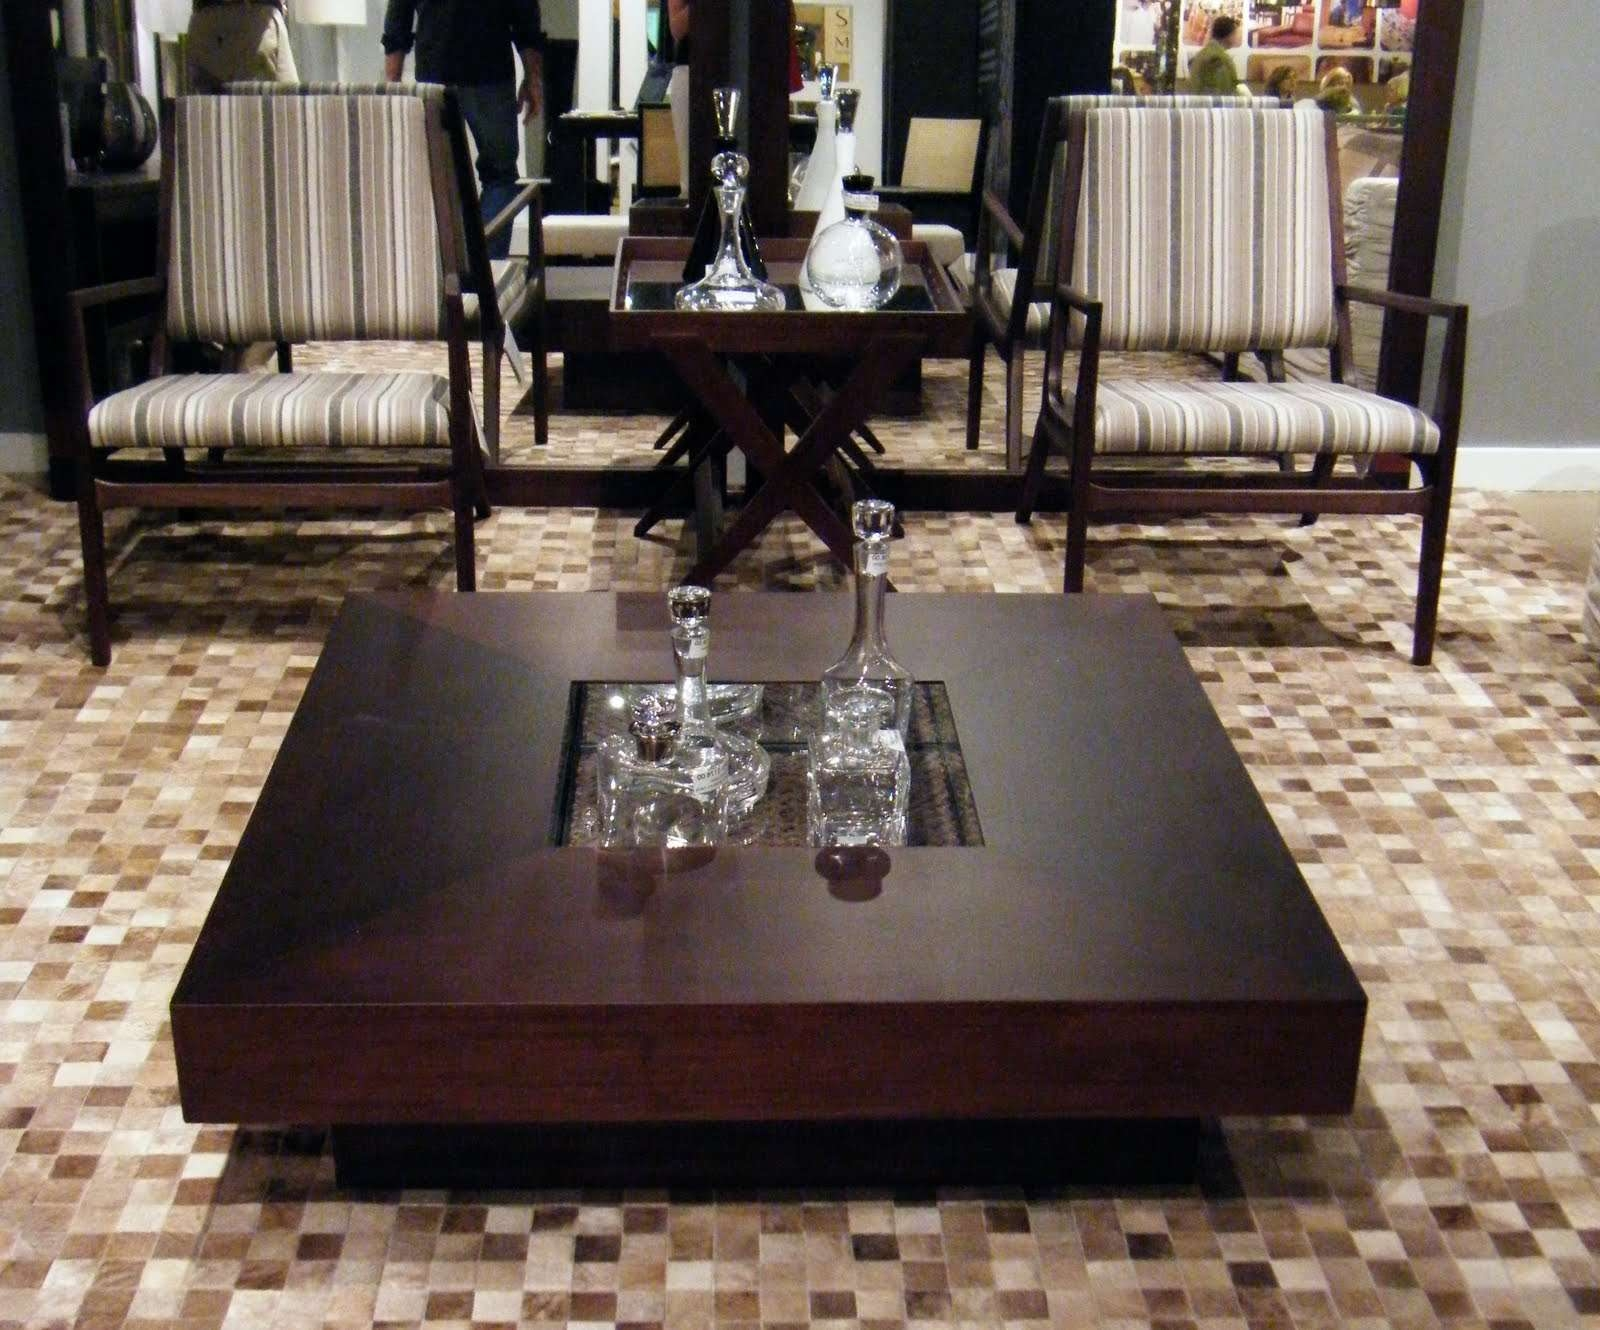 2017 Low Square Wooden Coffee Tables Regarding Coffee Table : Fabulous Round Glass Top Coffee Table Gray Wood (View 2 of 20)